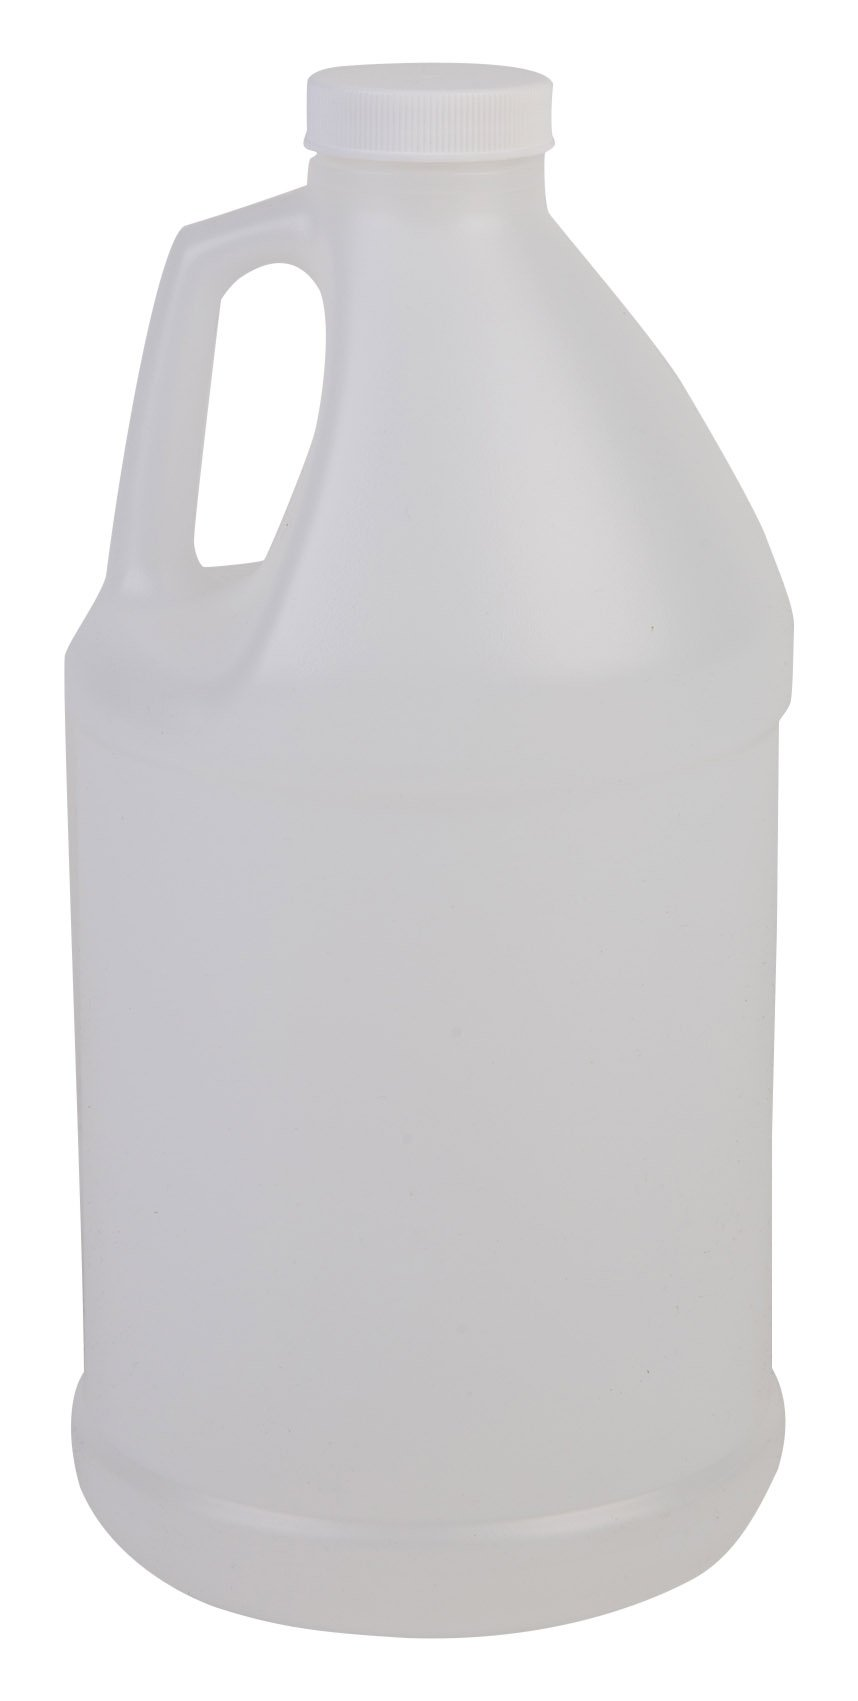 Hudson Exchange 1/2 Gallon Round Plastic Jug with Cap, HDPE, Natural, 6 Pack